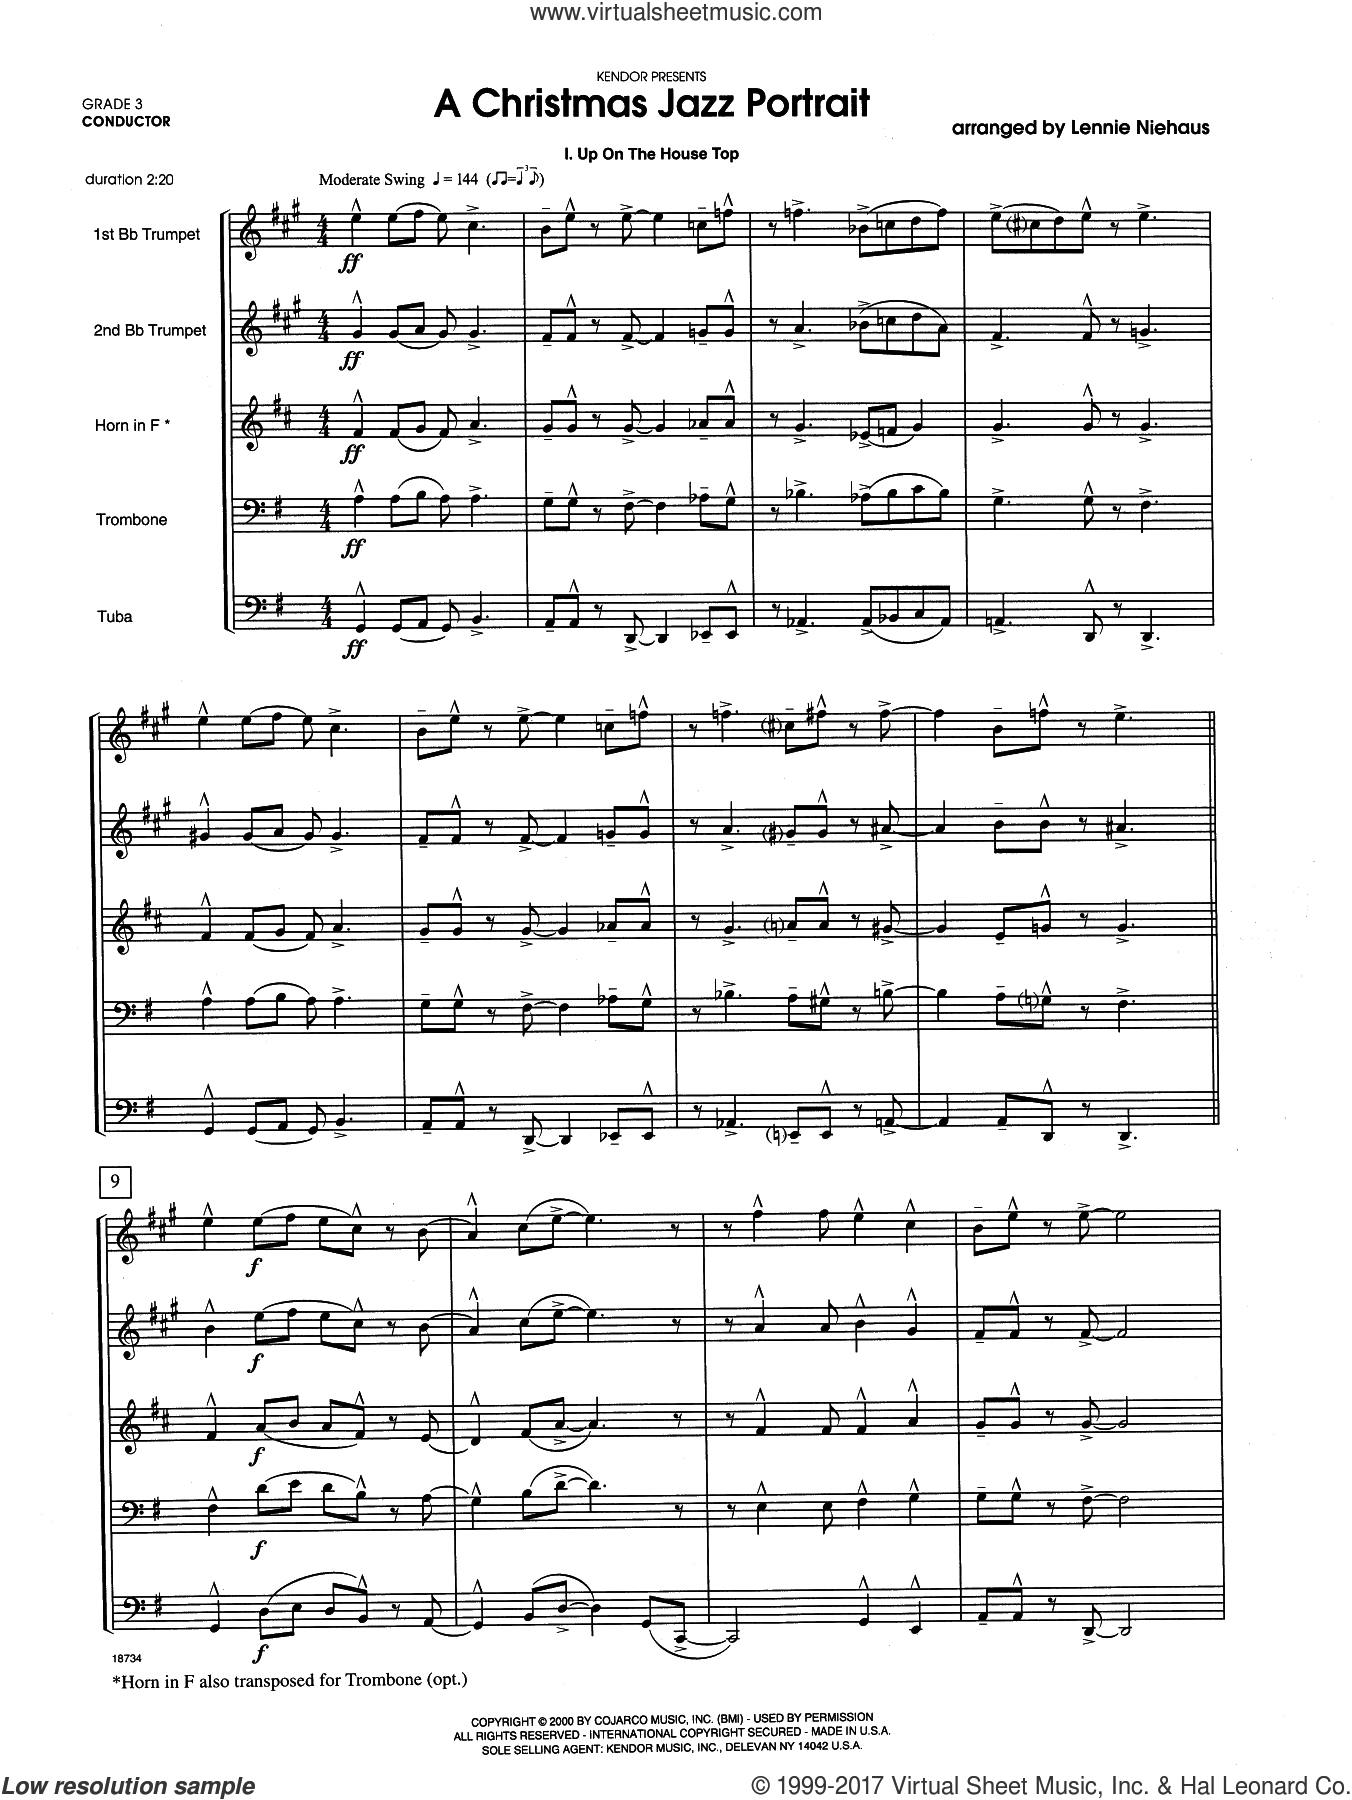 A Christmas Jazz Portrait (COMPLETE) sheet music for brass quintet by Lennie Niehaus, intermediate skill level